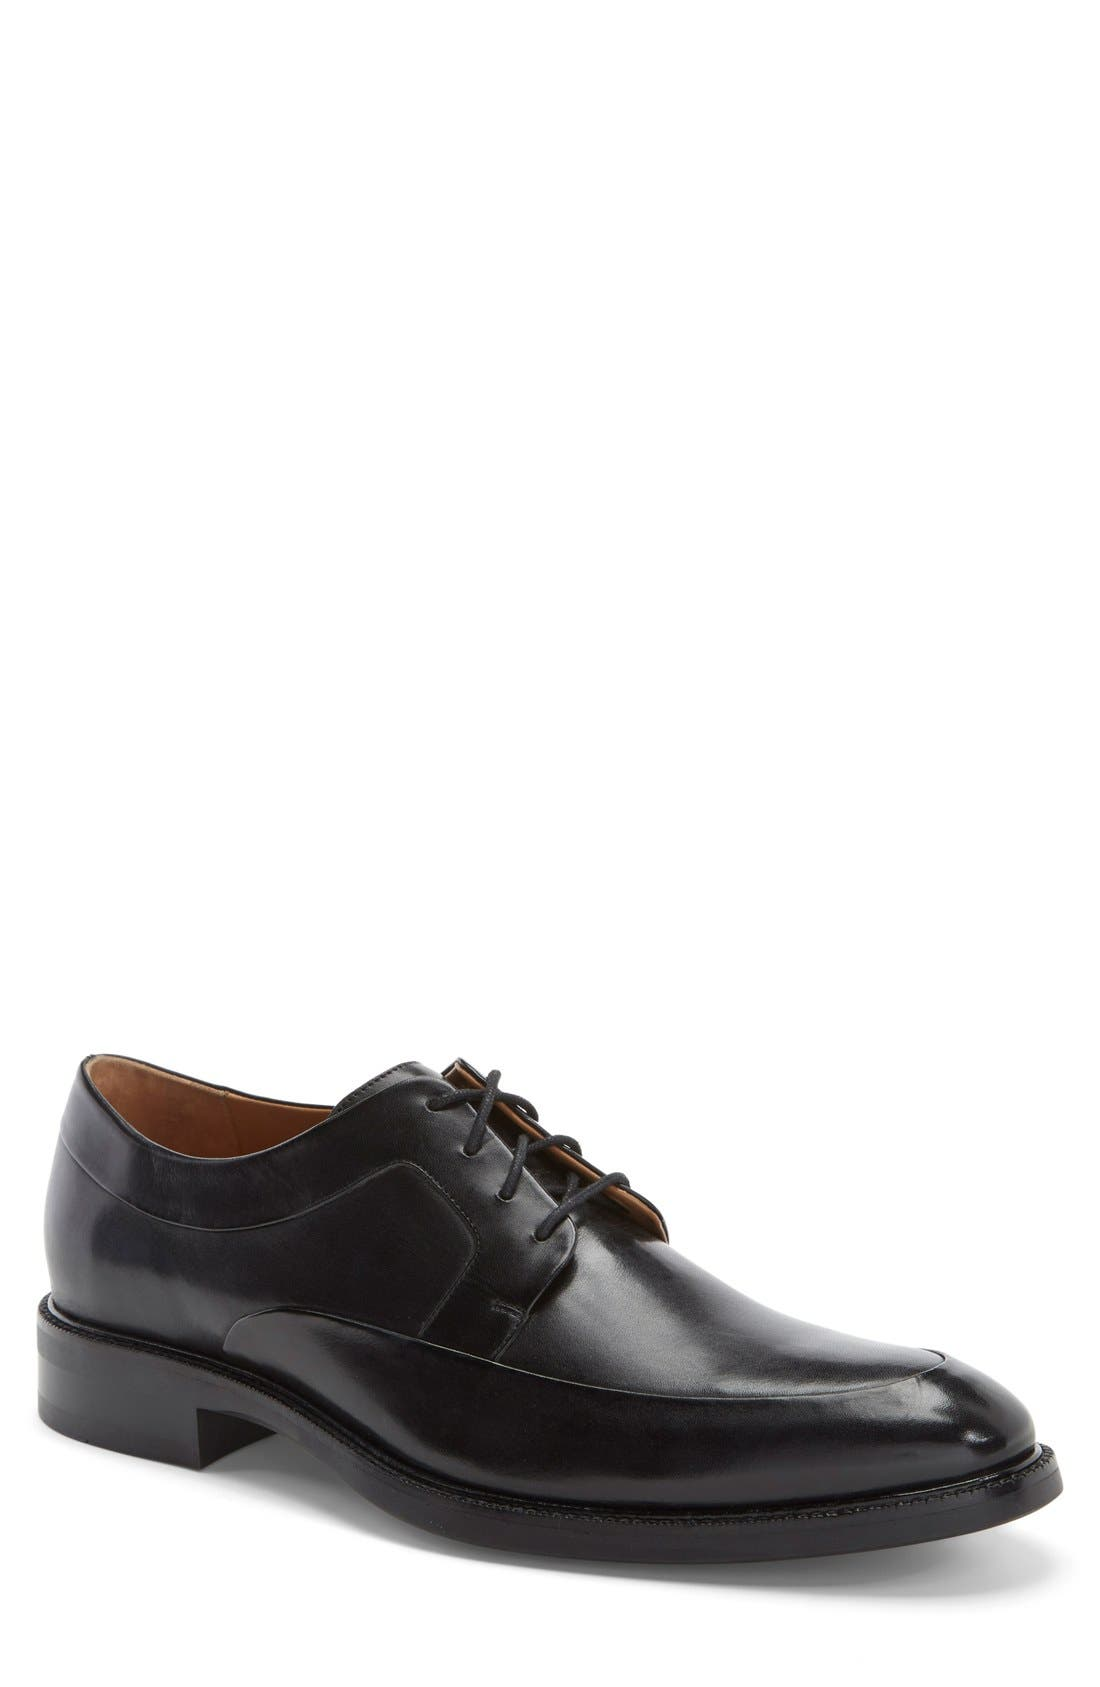 Alternate Image 1 Selected - Cole Haan 'Warren' Apron Toe Derby (Men)